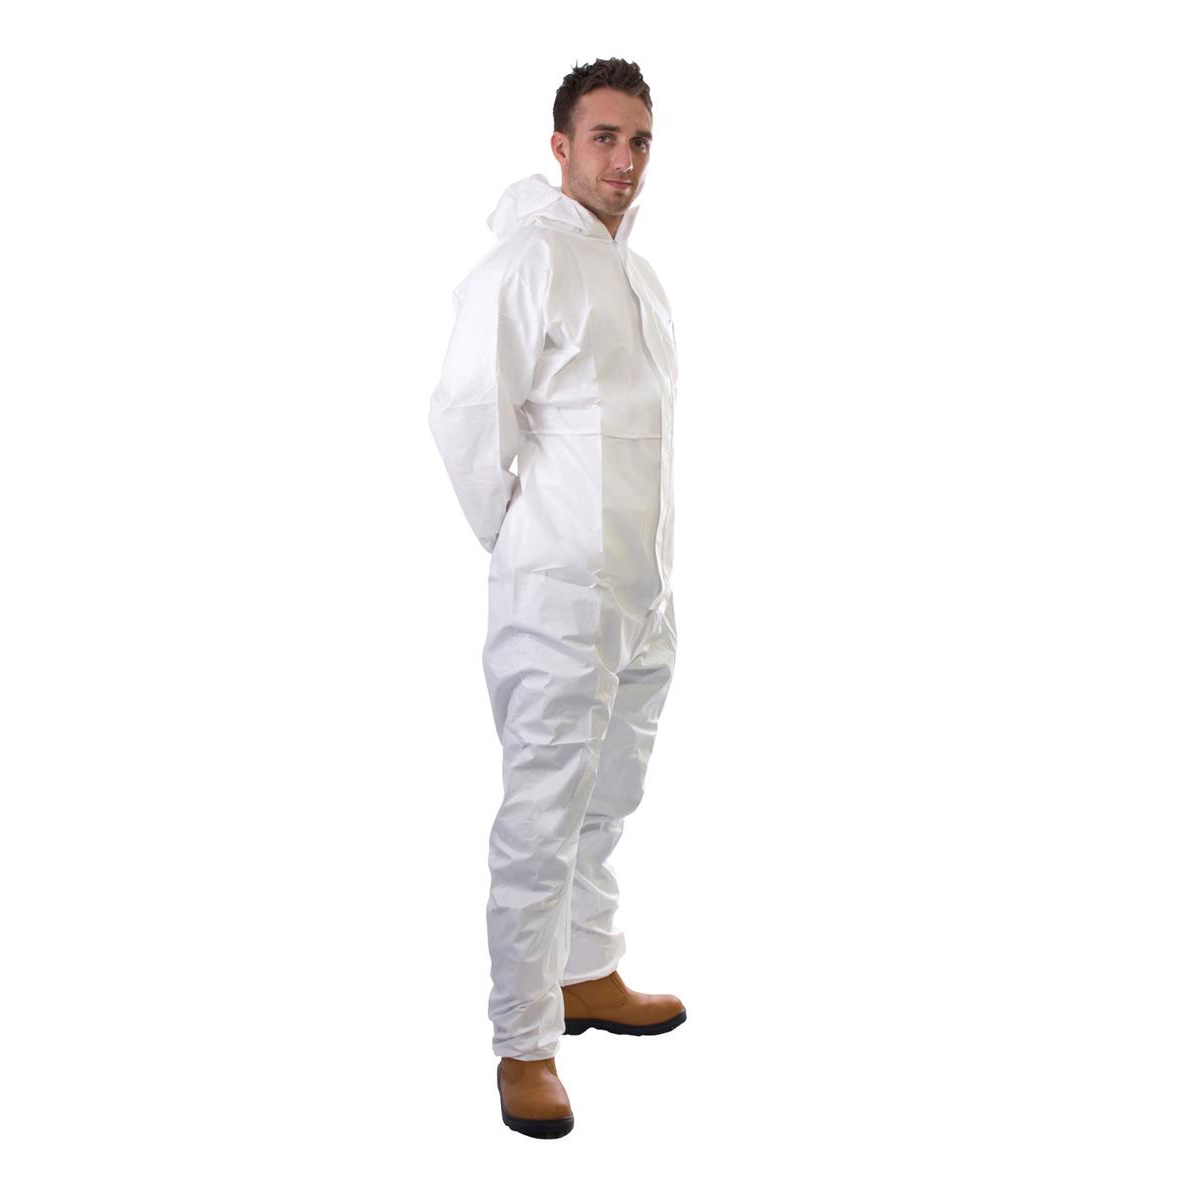 Supertouch Supertex Plus Coverall Type 5/6 Protection Small White Ref 17901 *Approx 3 Day Leadtime*